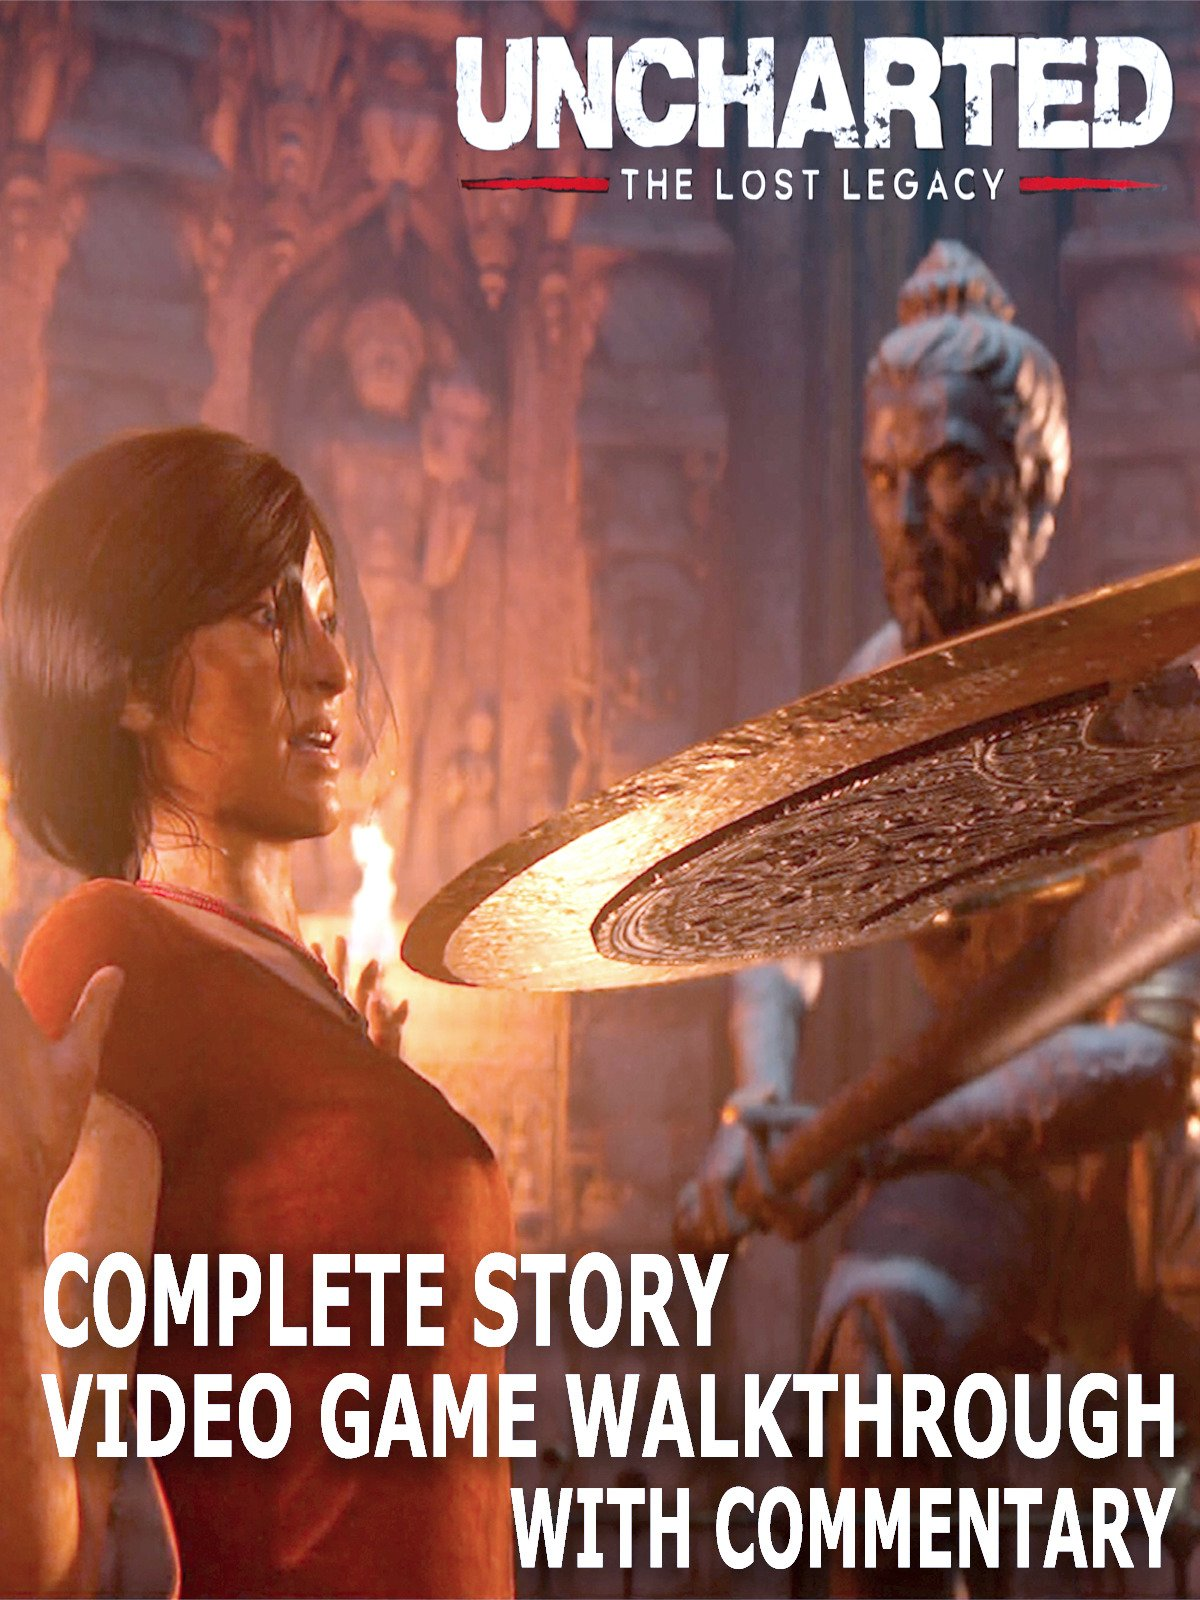 Clip: Uncharted The Lost Legacy Complete Story Video Game Walkthrough with Commentary on Amazon Prime Video UK